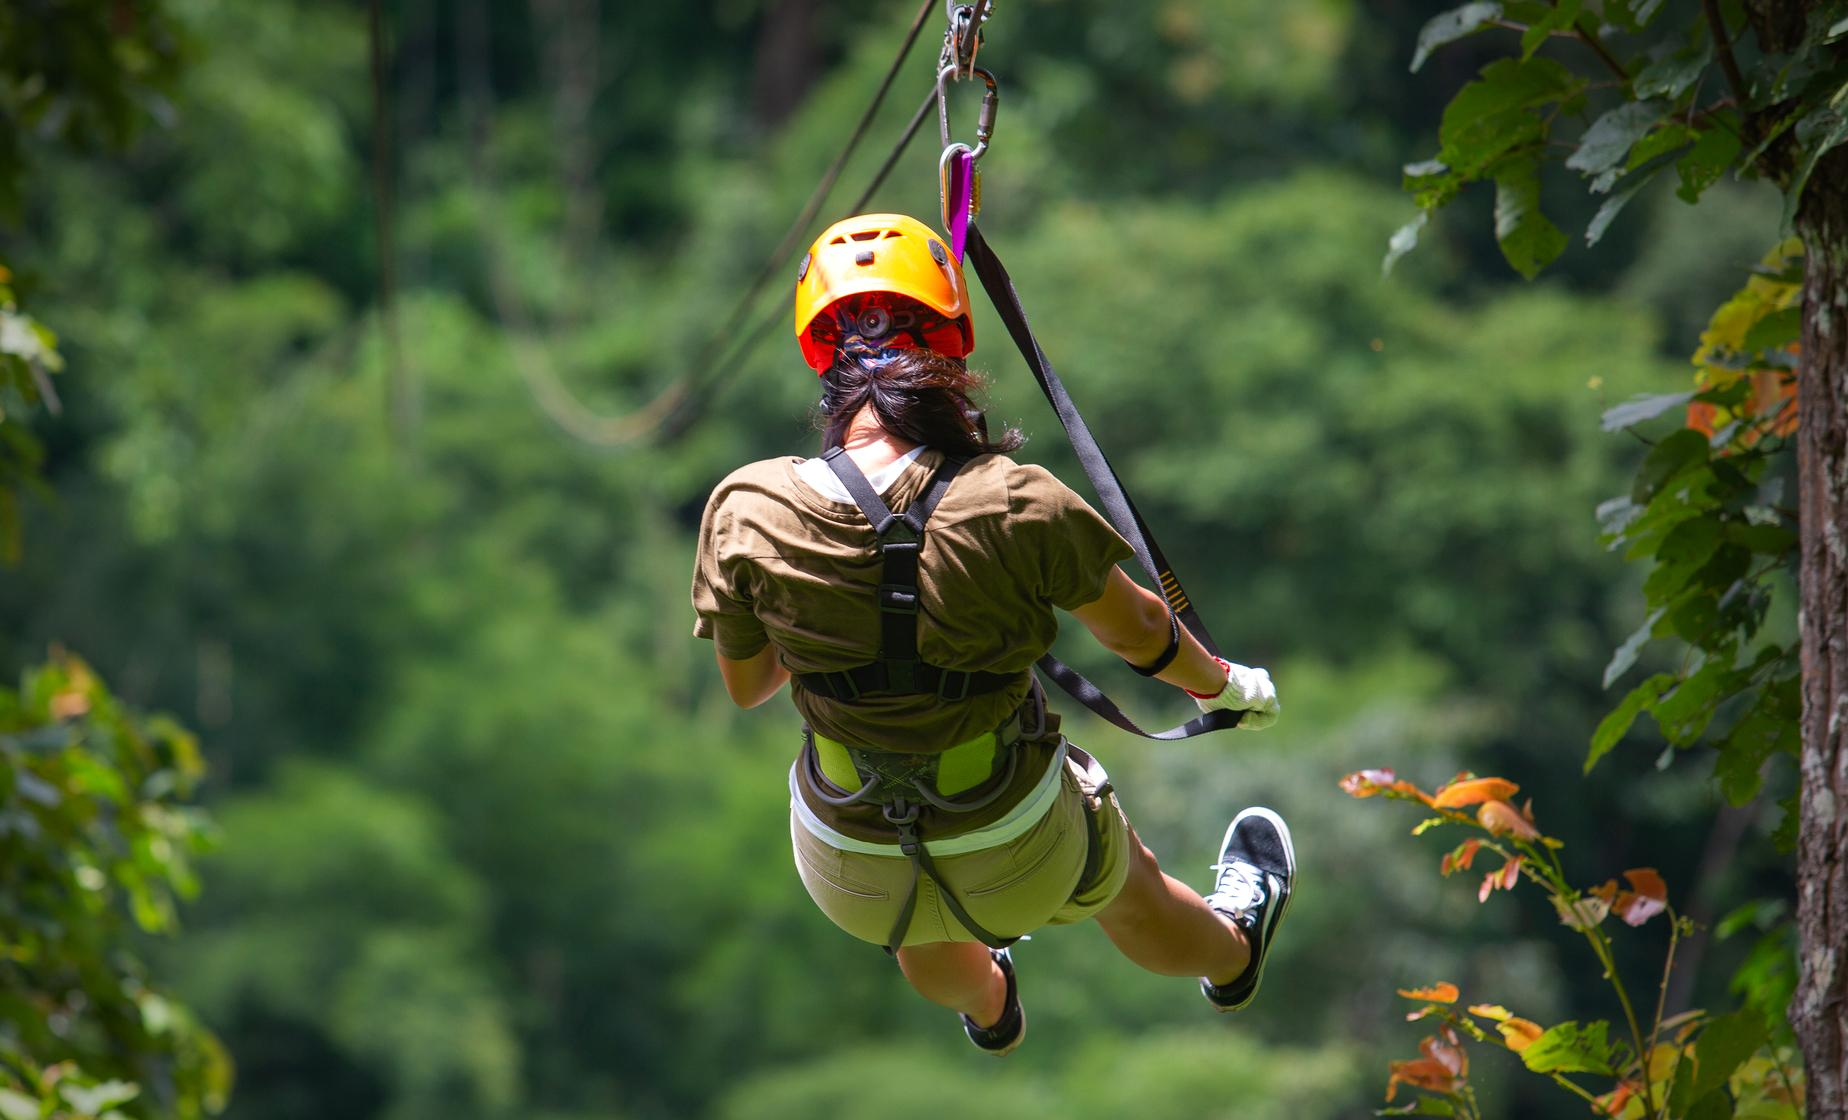 Rainforest Sky Rides Port Tour with Aerial Tram & Hiking in St. Lucia